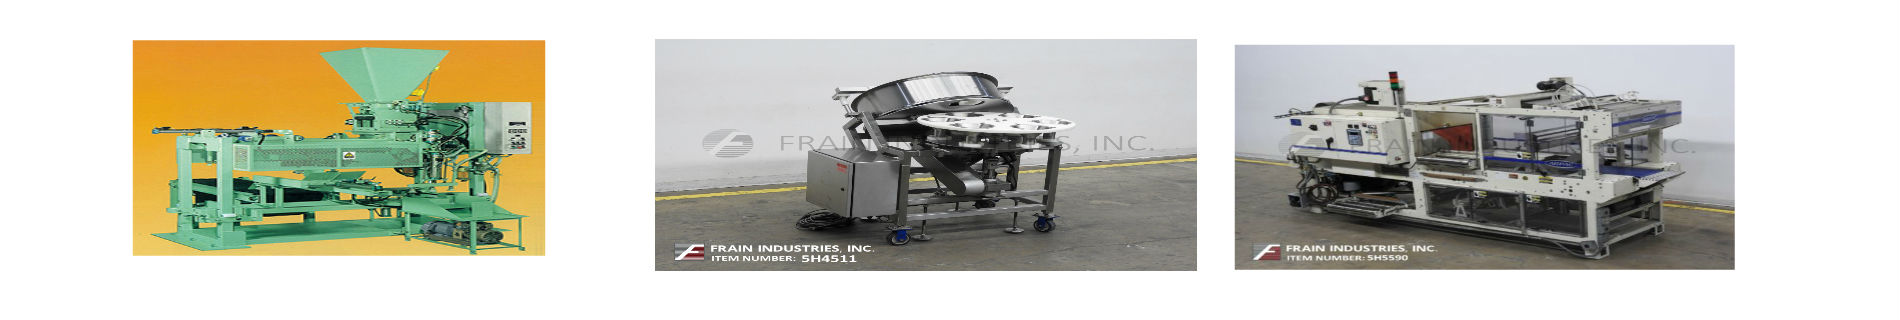 Packaging Machinery Companies banner